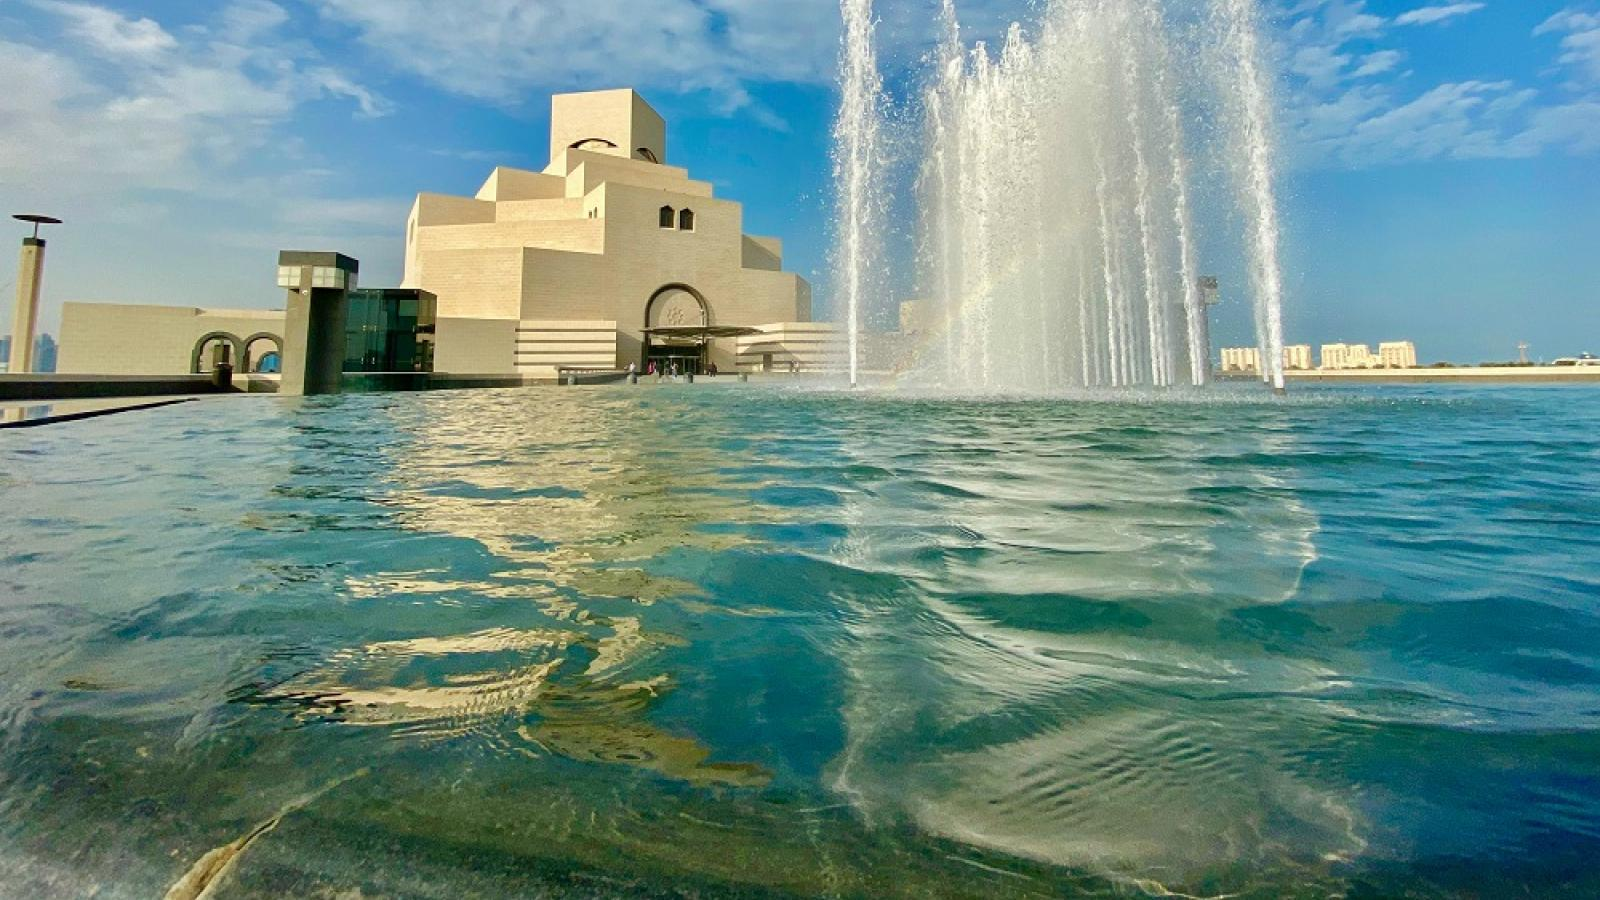 WATCH: Qatar Museums to begin reopening museums and heritage sites from July 1